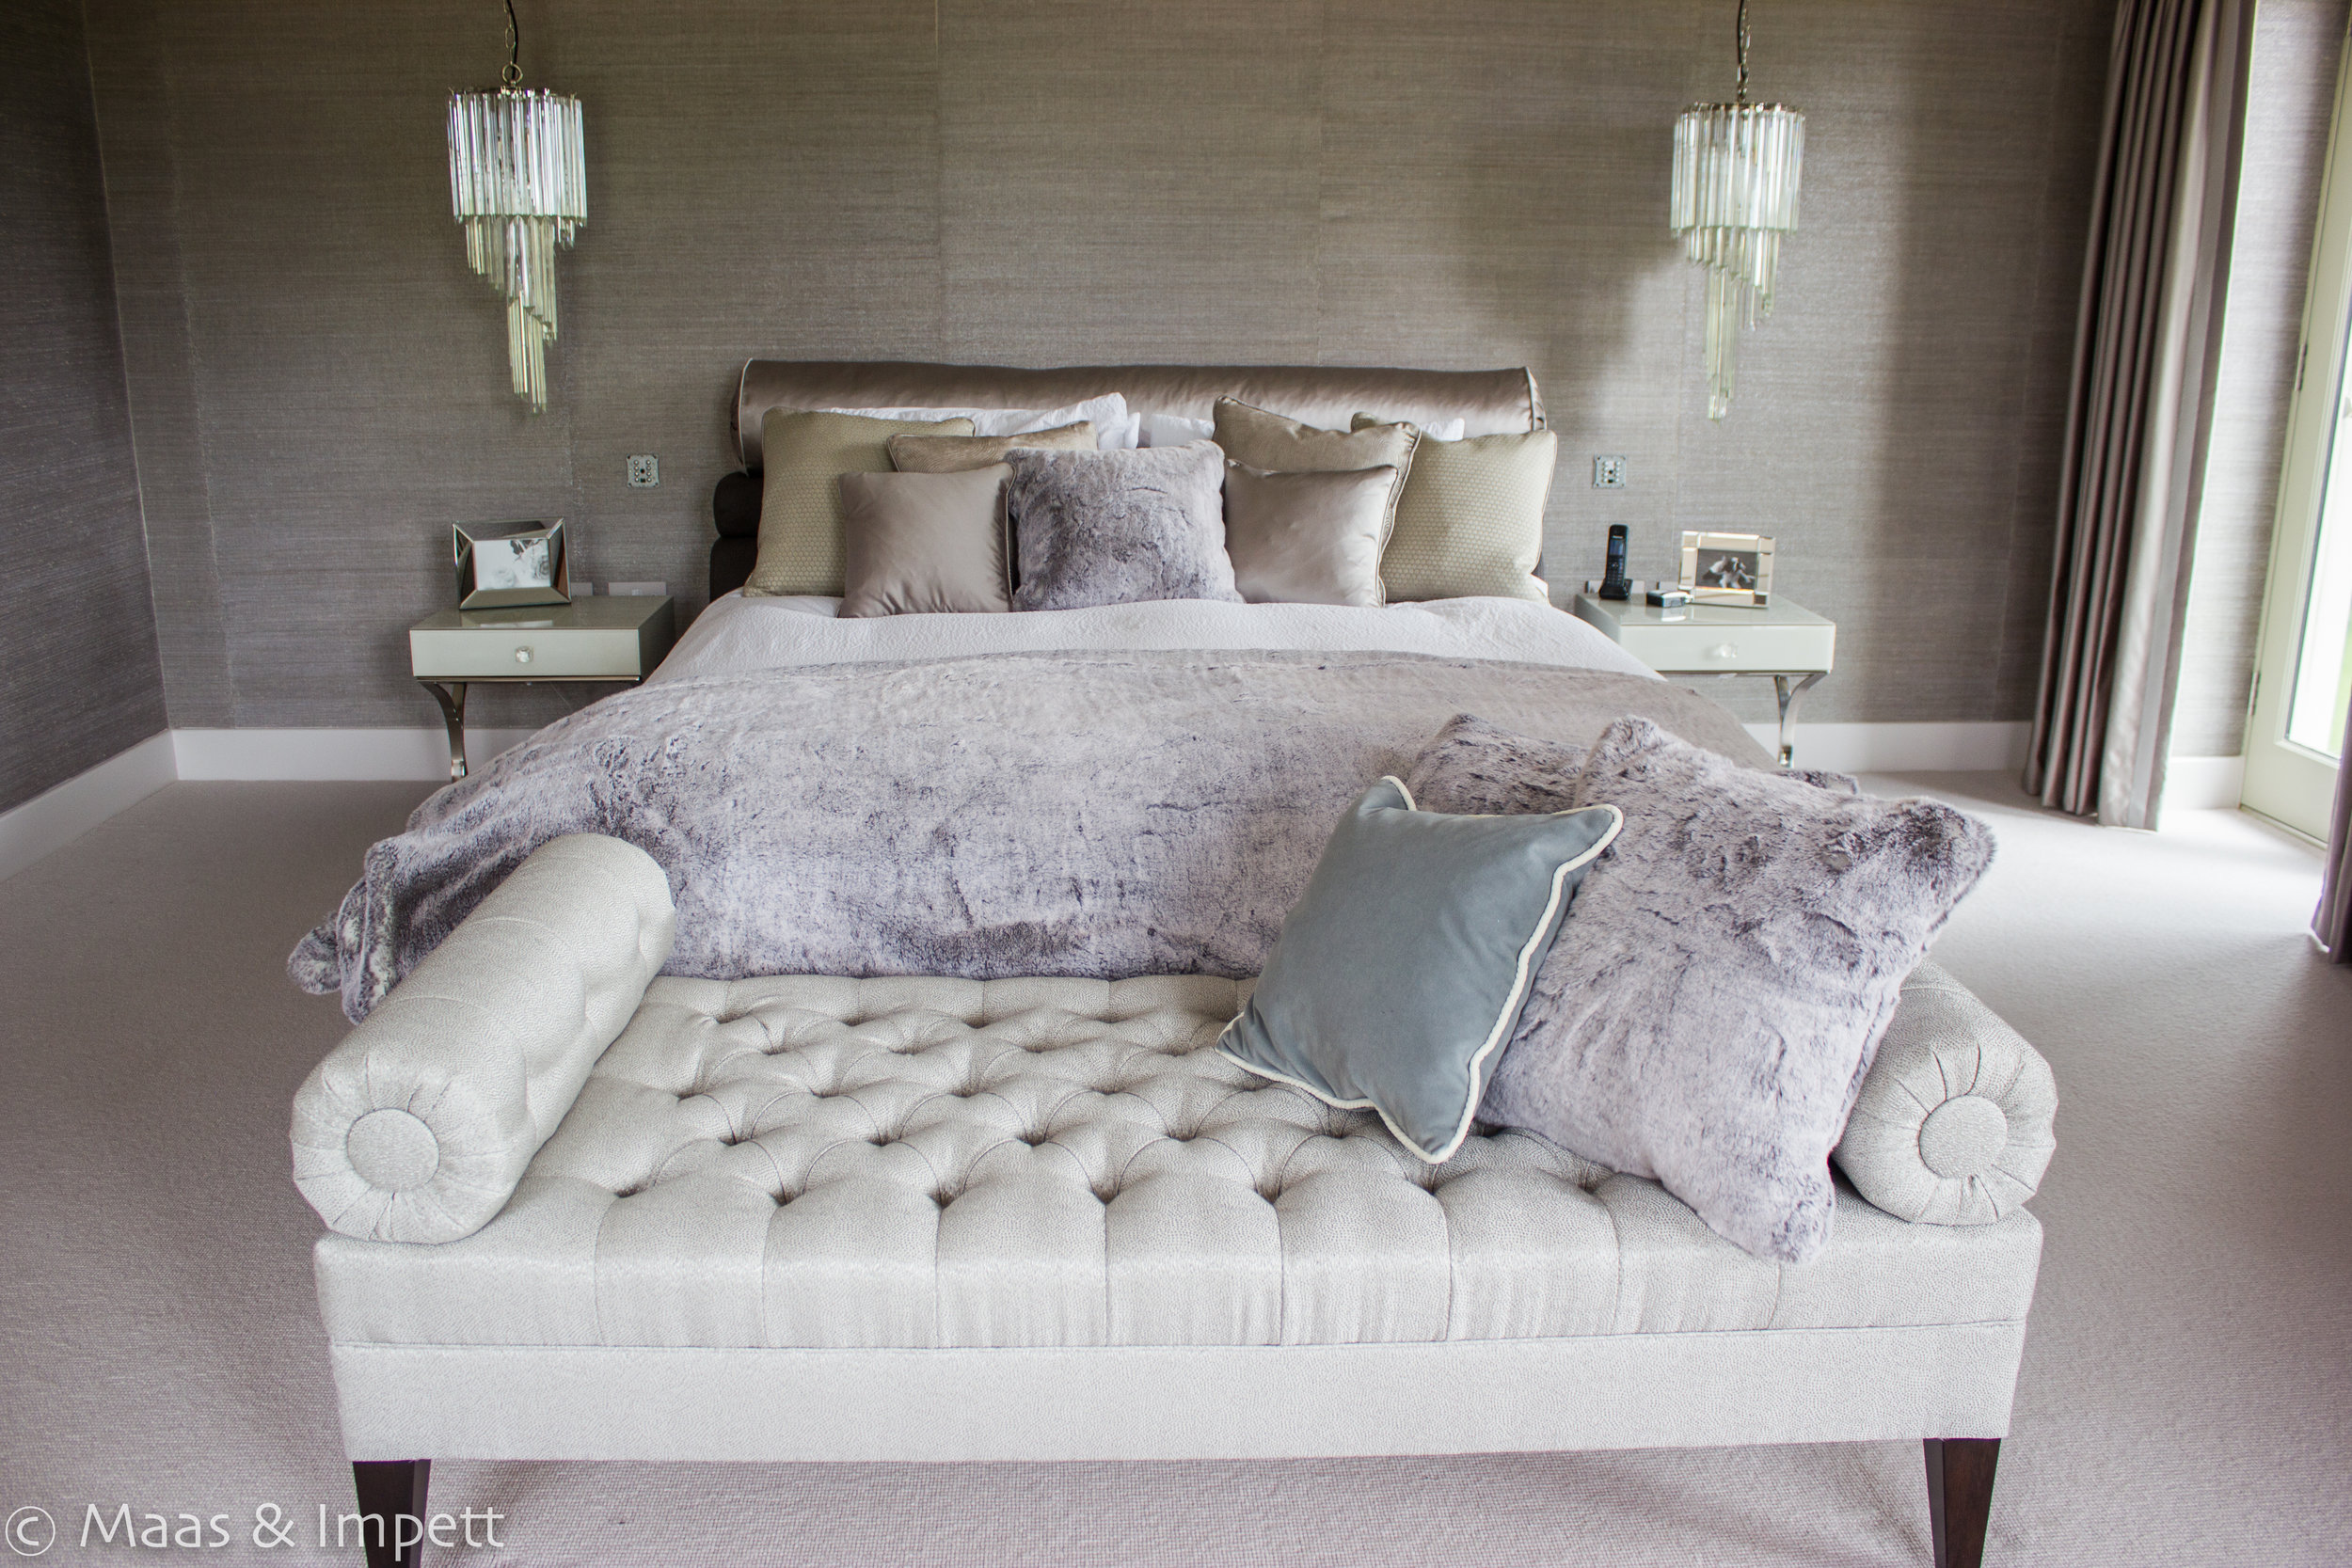 Bedroom interior by Maas & Impett, Hampshire based Interior designers.